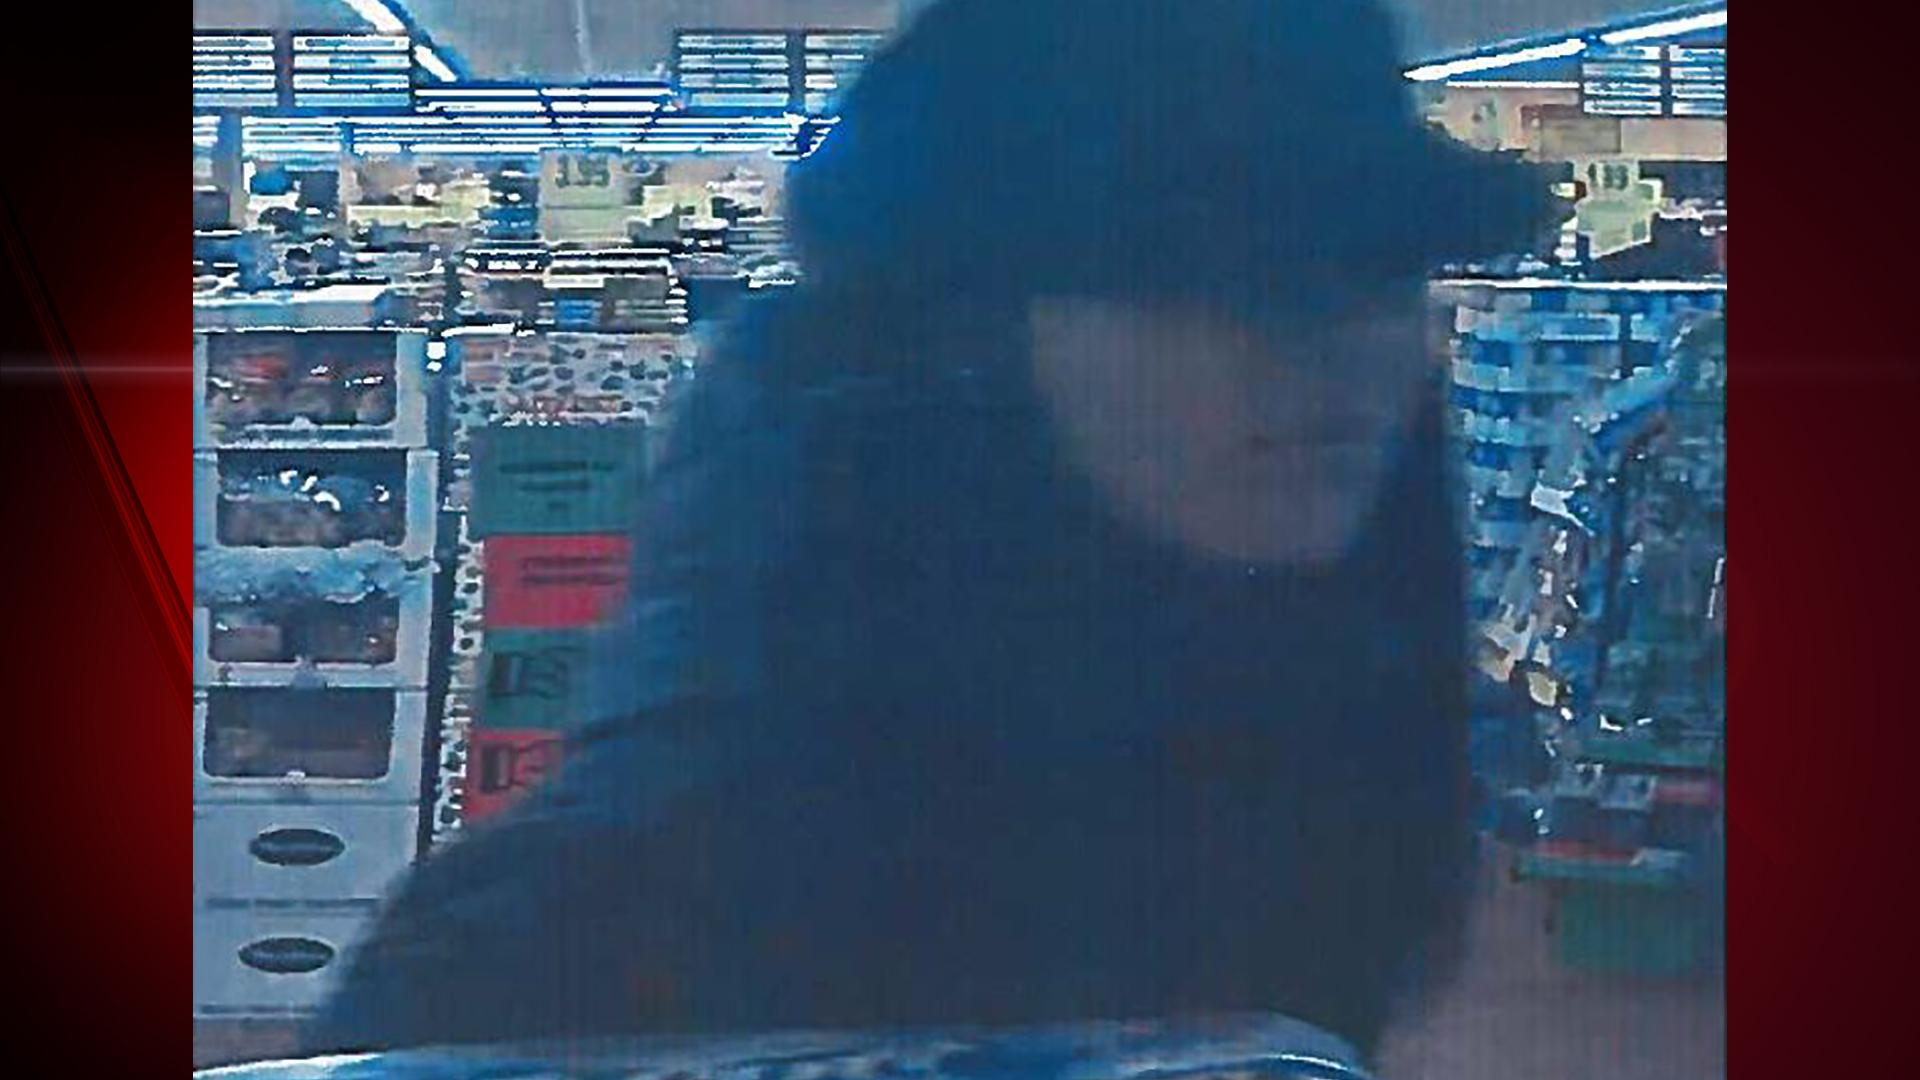 A surveillance image of one of the two suspects believed to be involved in a card skimming incident at Woodman's store in Howard, November 19, 2017. (Photo courtesy of Brown County Sheriff's Office)